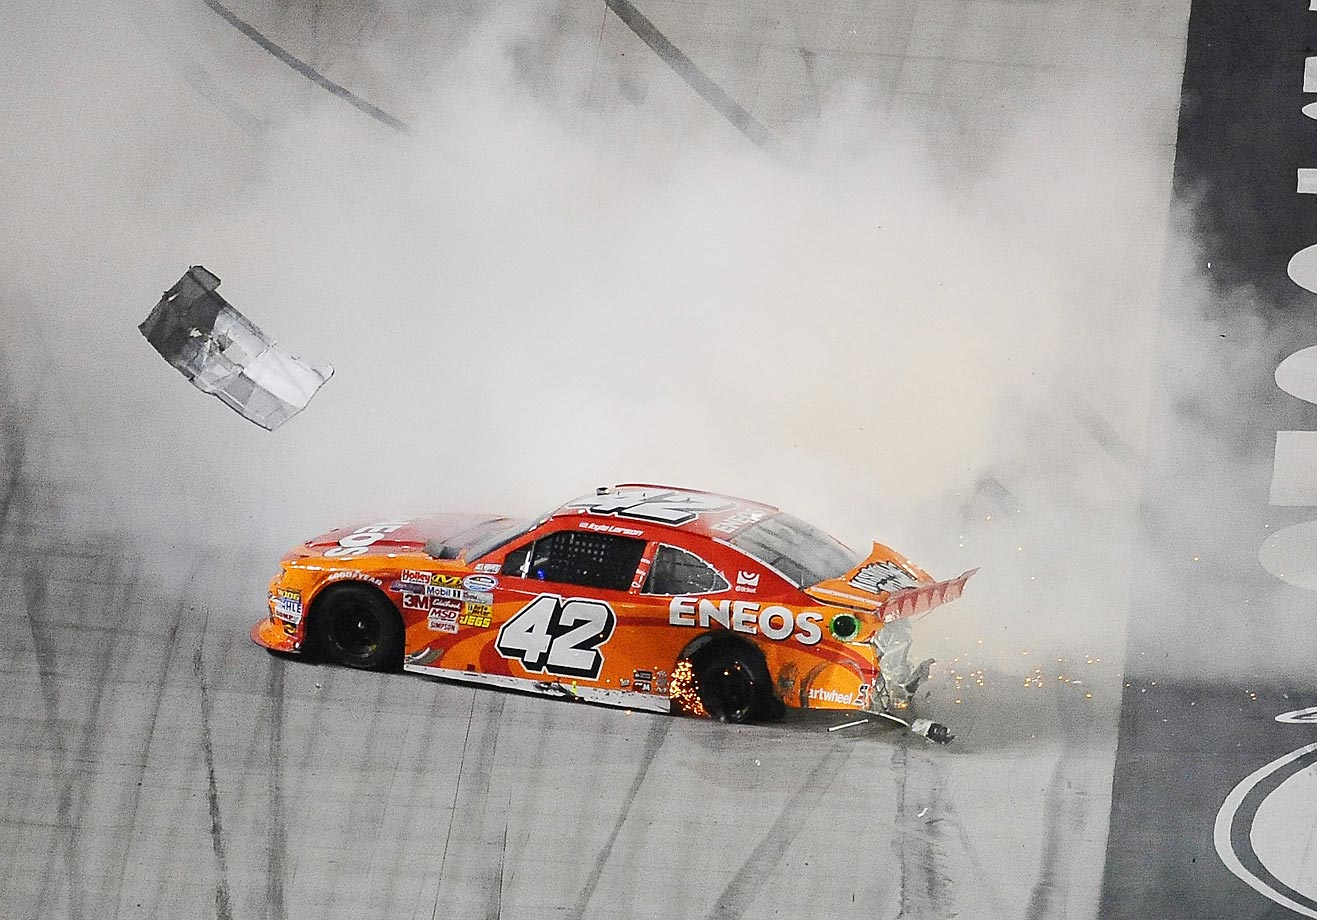 Kyle Larson spins out during the NASCAR Nationwide Series Food City 300 at Bristol Motor Speedway on August 22.